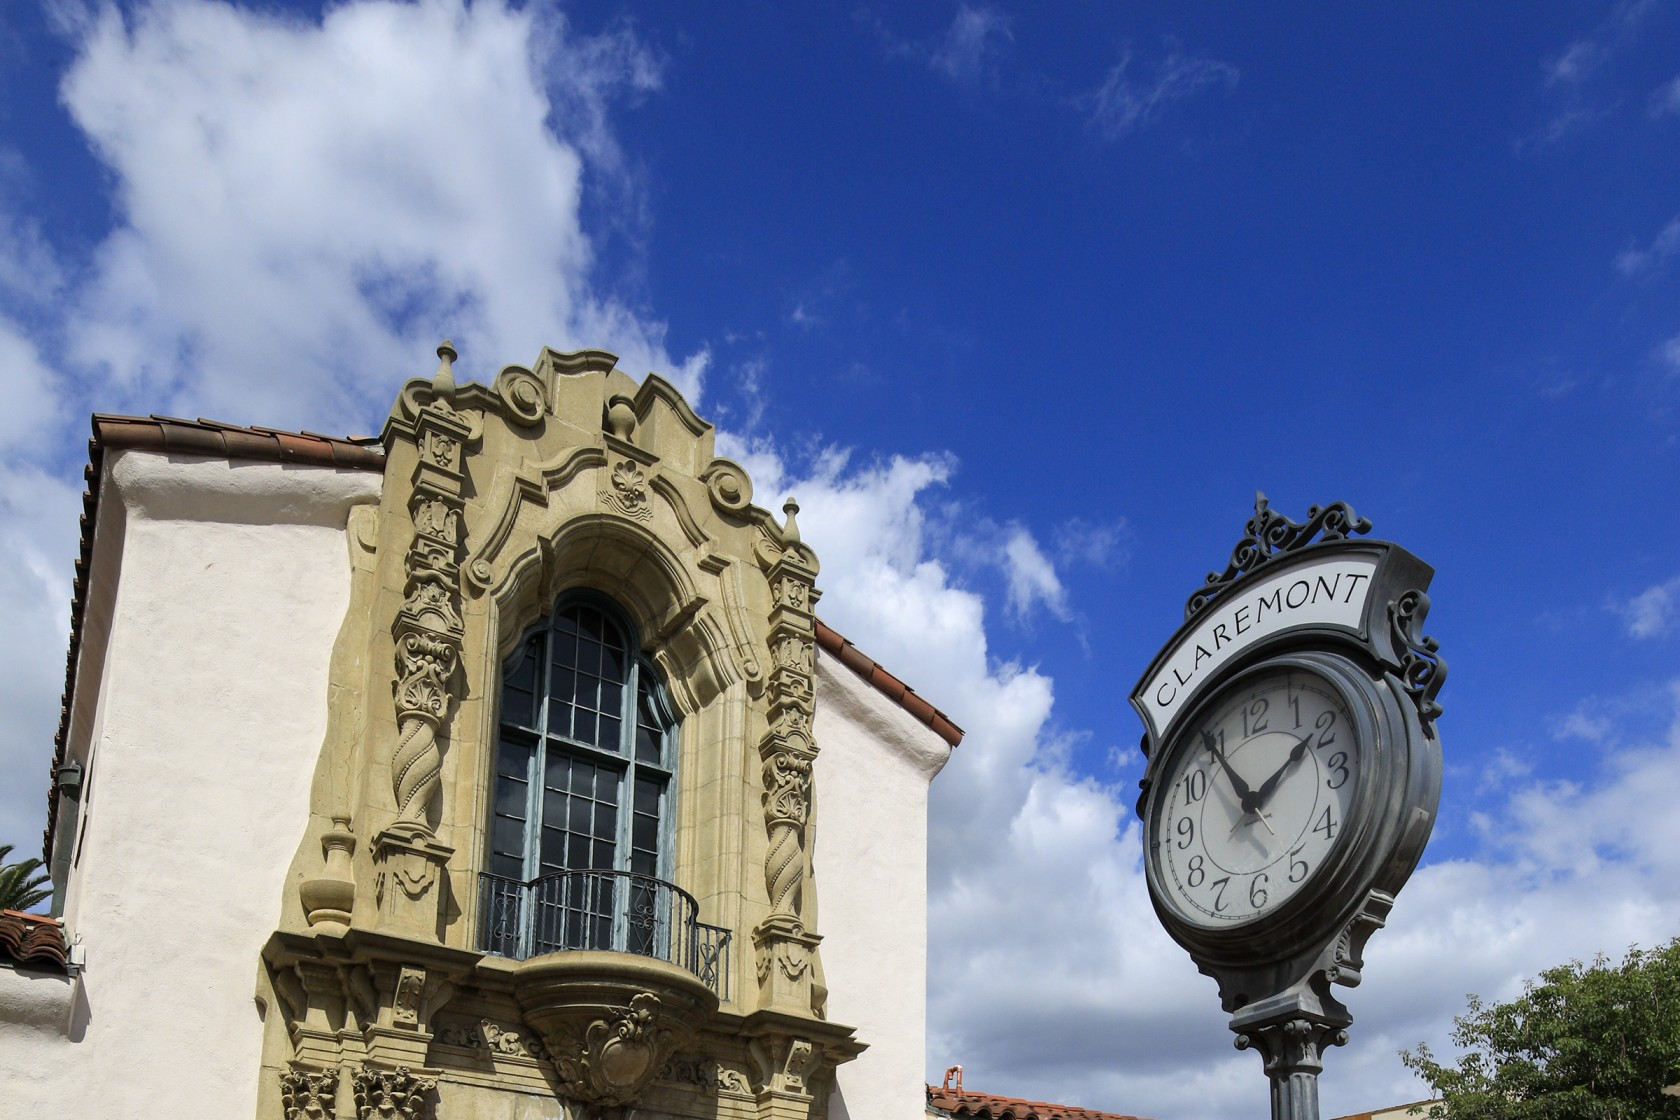 A clock outside a historic building in Claremont.